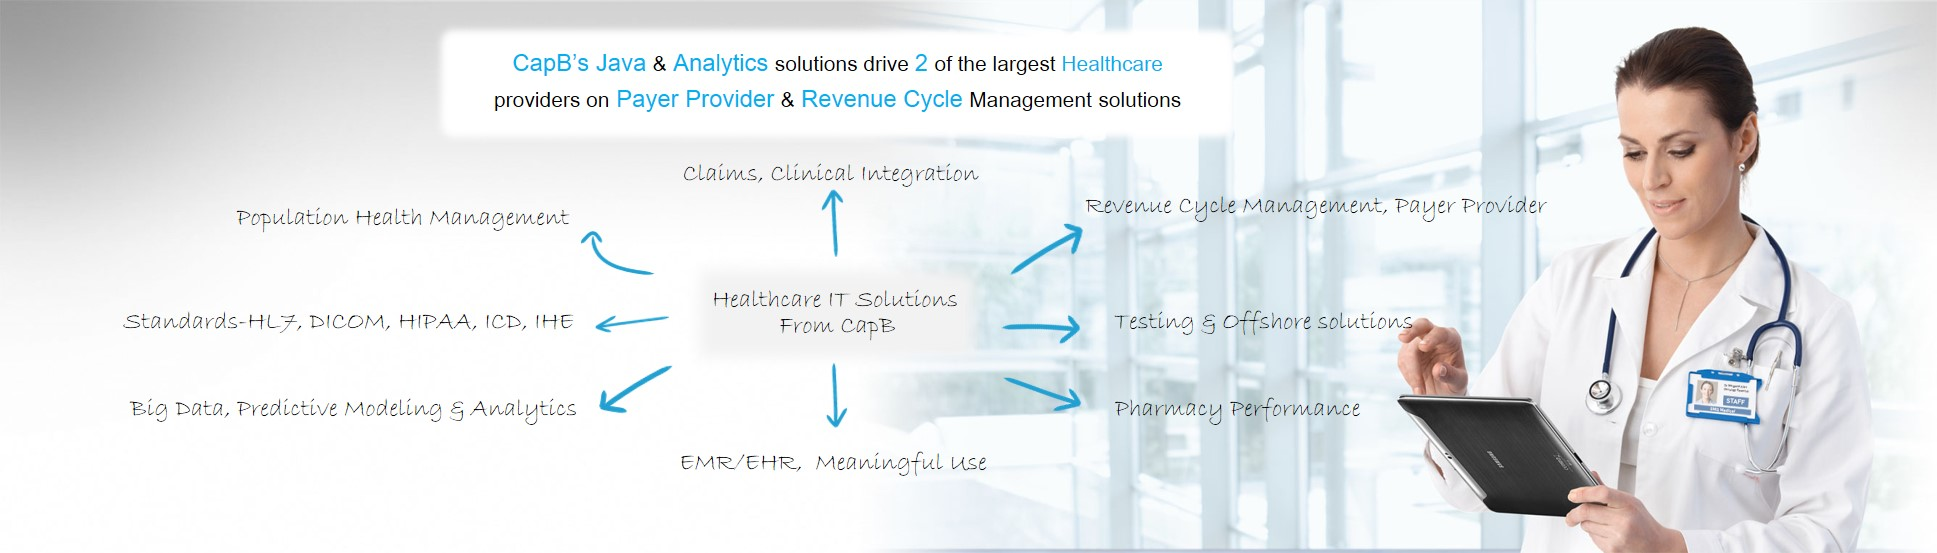 CAPB-HEALTHCARE-PAYER-PROVIDER-REVENUCE-CYCLE-MANAGEMNET-CLIAMS-EMR-EHR-MEANINGFUL-USE-CLINICAL-INTEGRTAION-PREDICTIVE-MODELING-ANALYTICS-HL7-HIPPA-ICD-POPULATION-HELATH-TESTING-OFFSHORE1